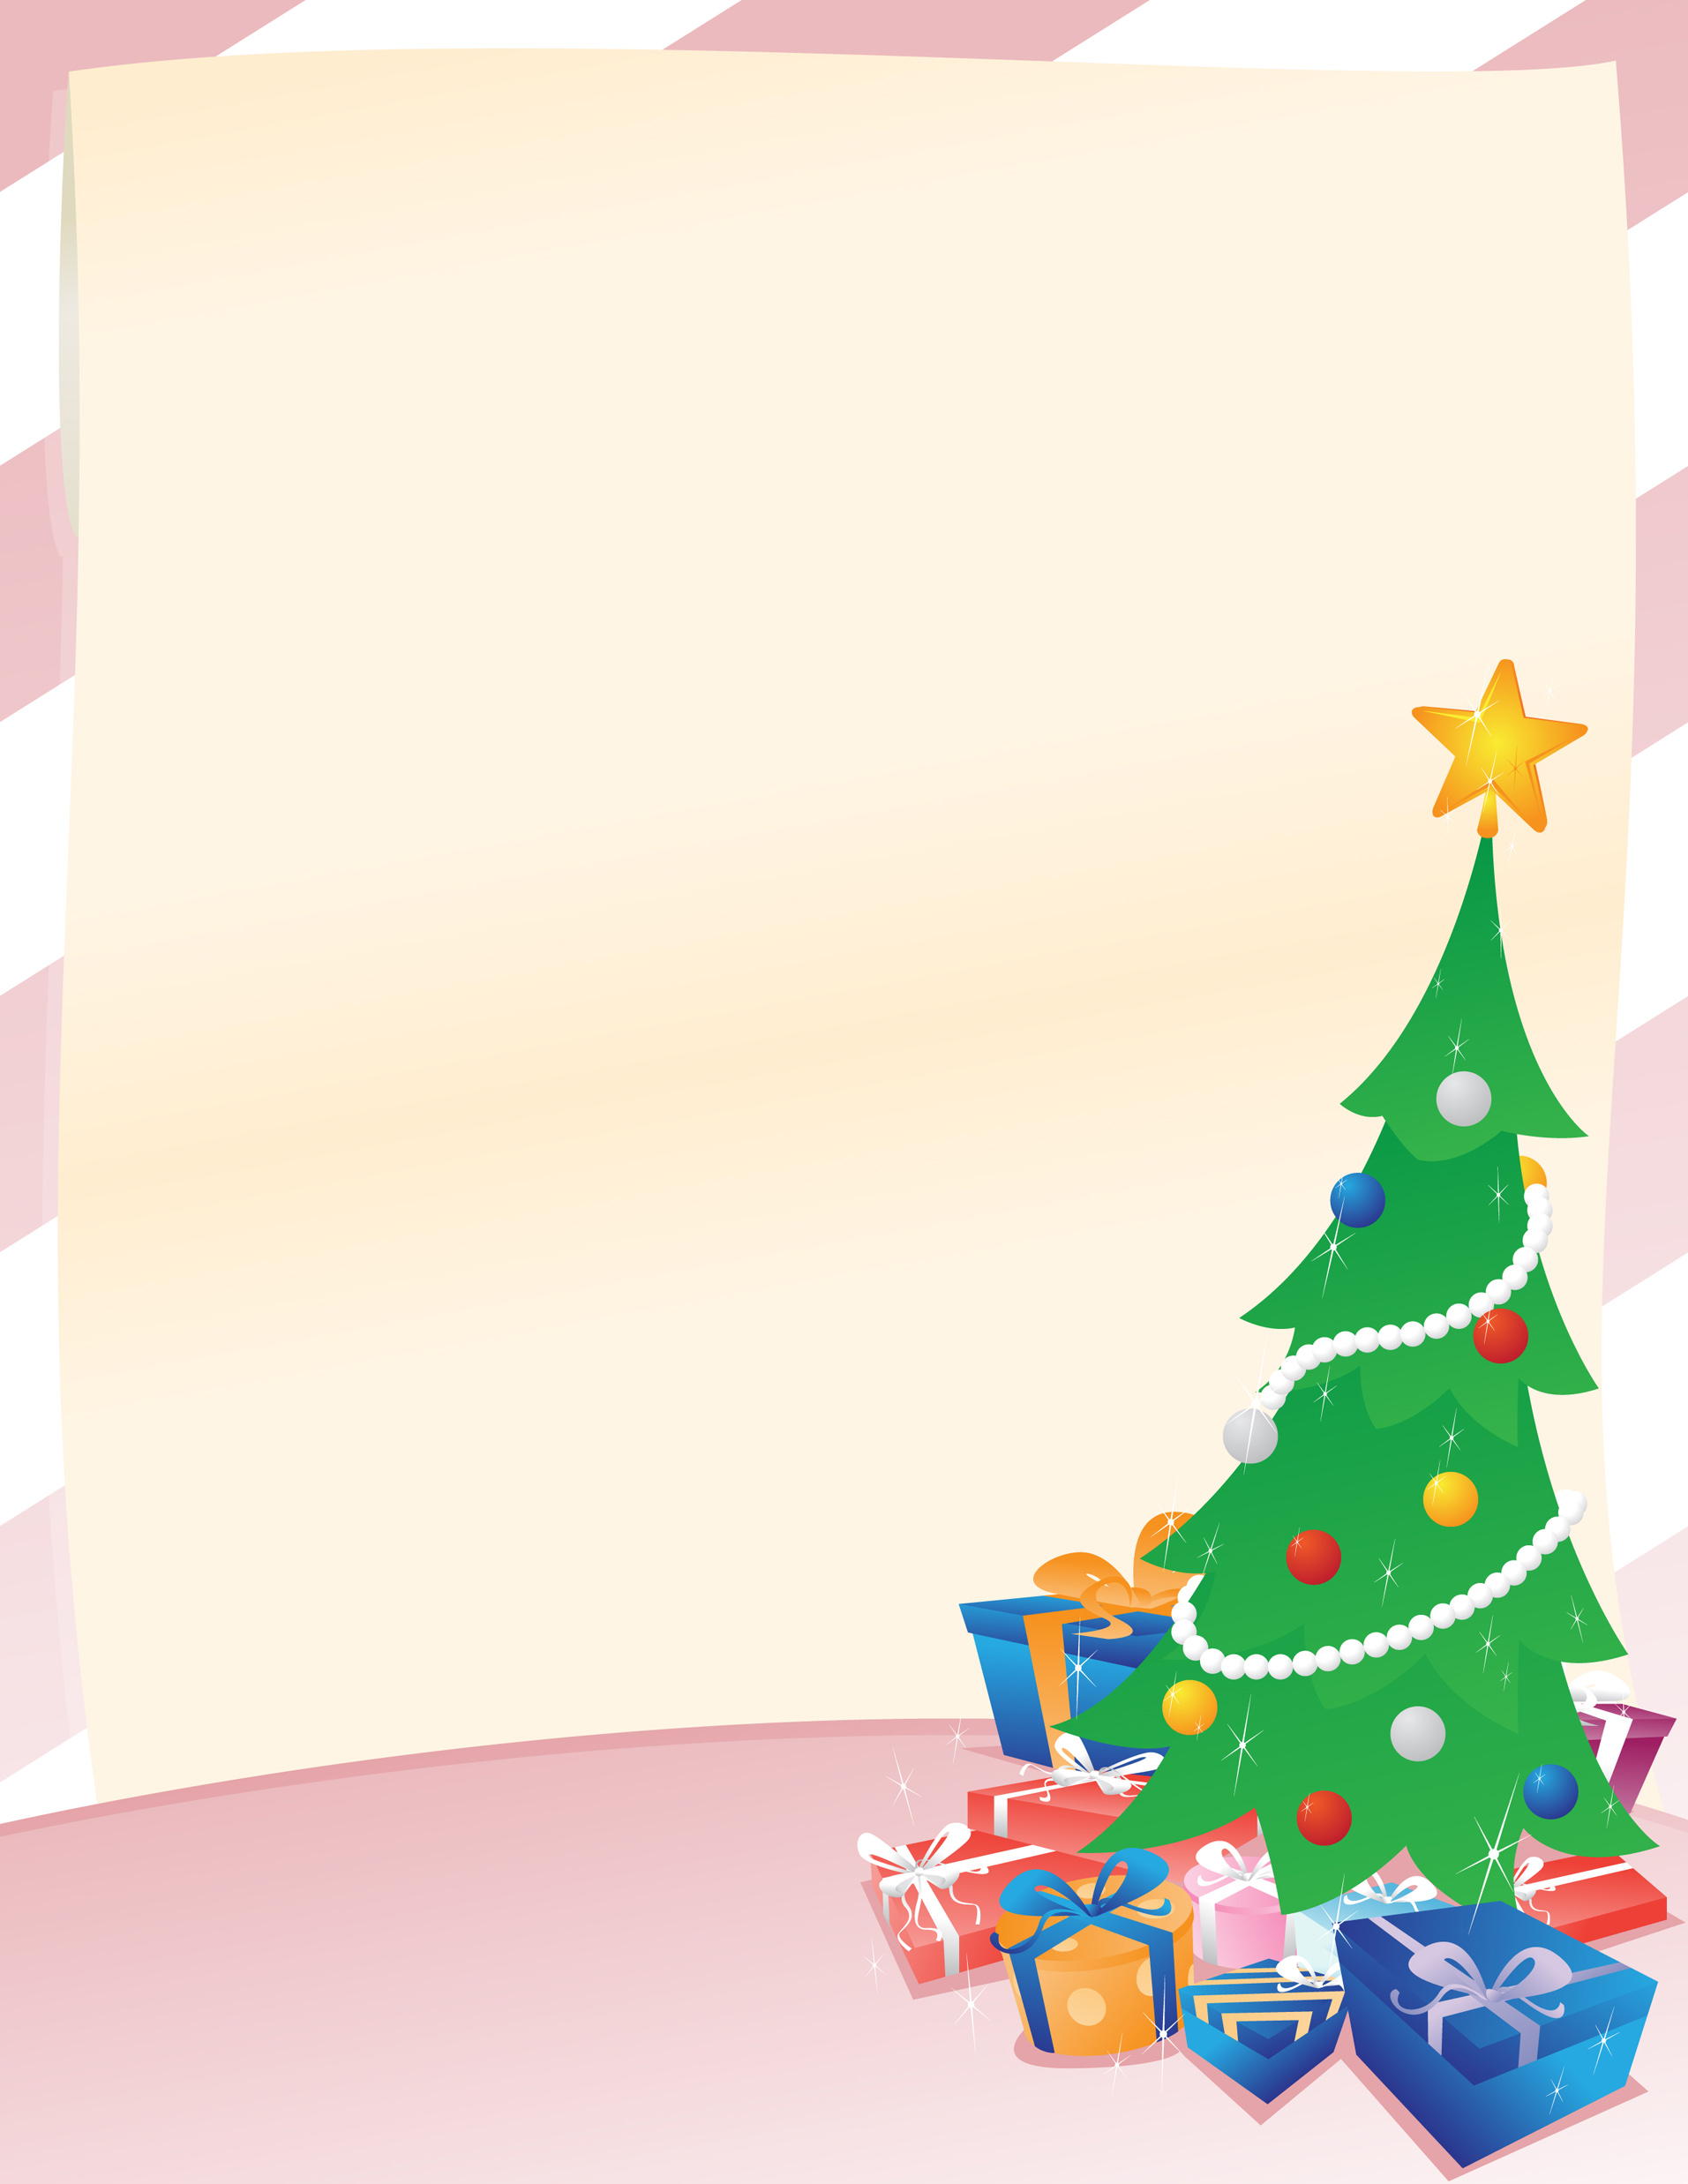 flyer clipart clipart kid white blue orange red purple christmas holiday greeting flyer